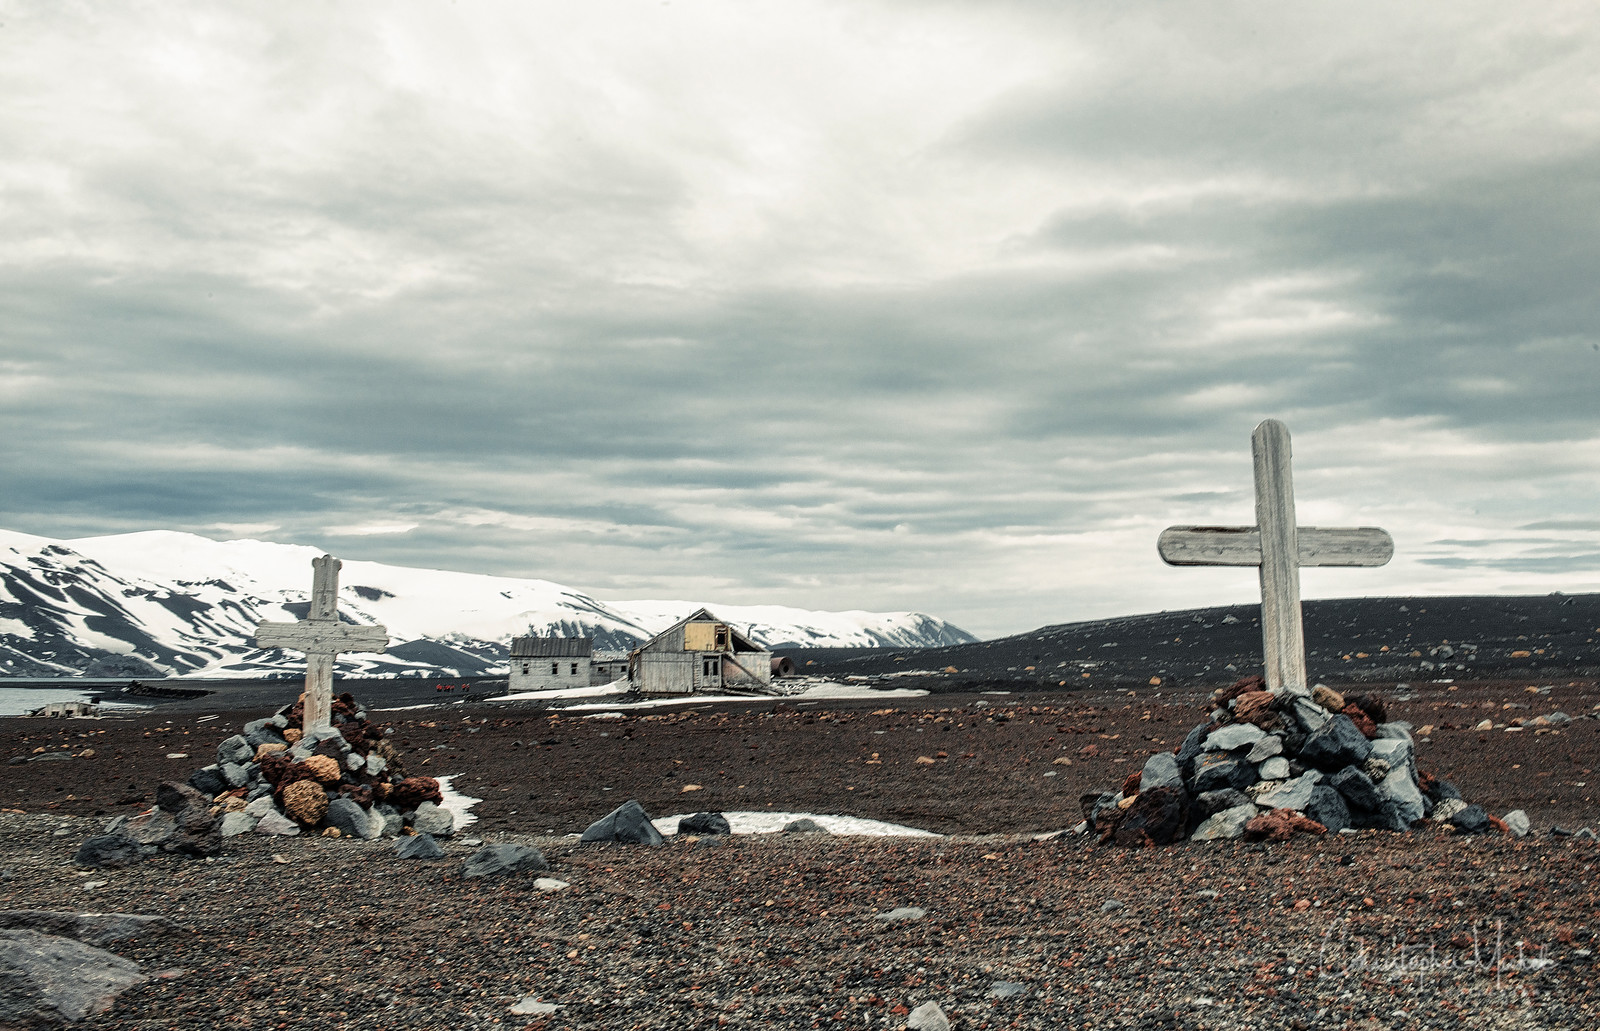 The graves of two whalers on Deception Island, Antarctica.